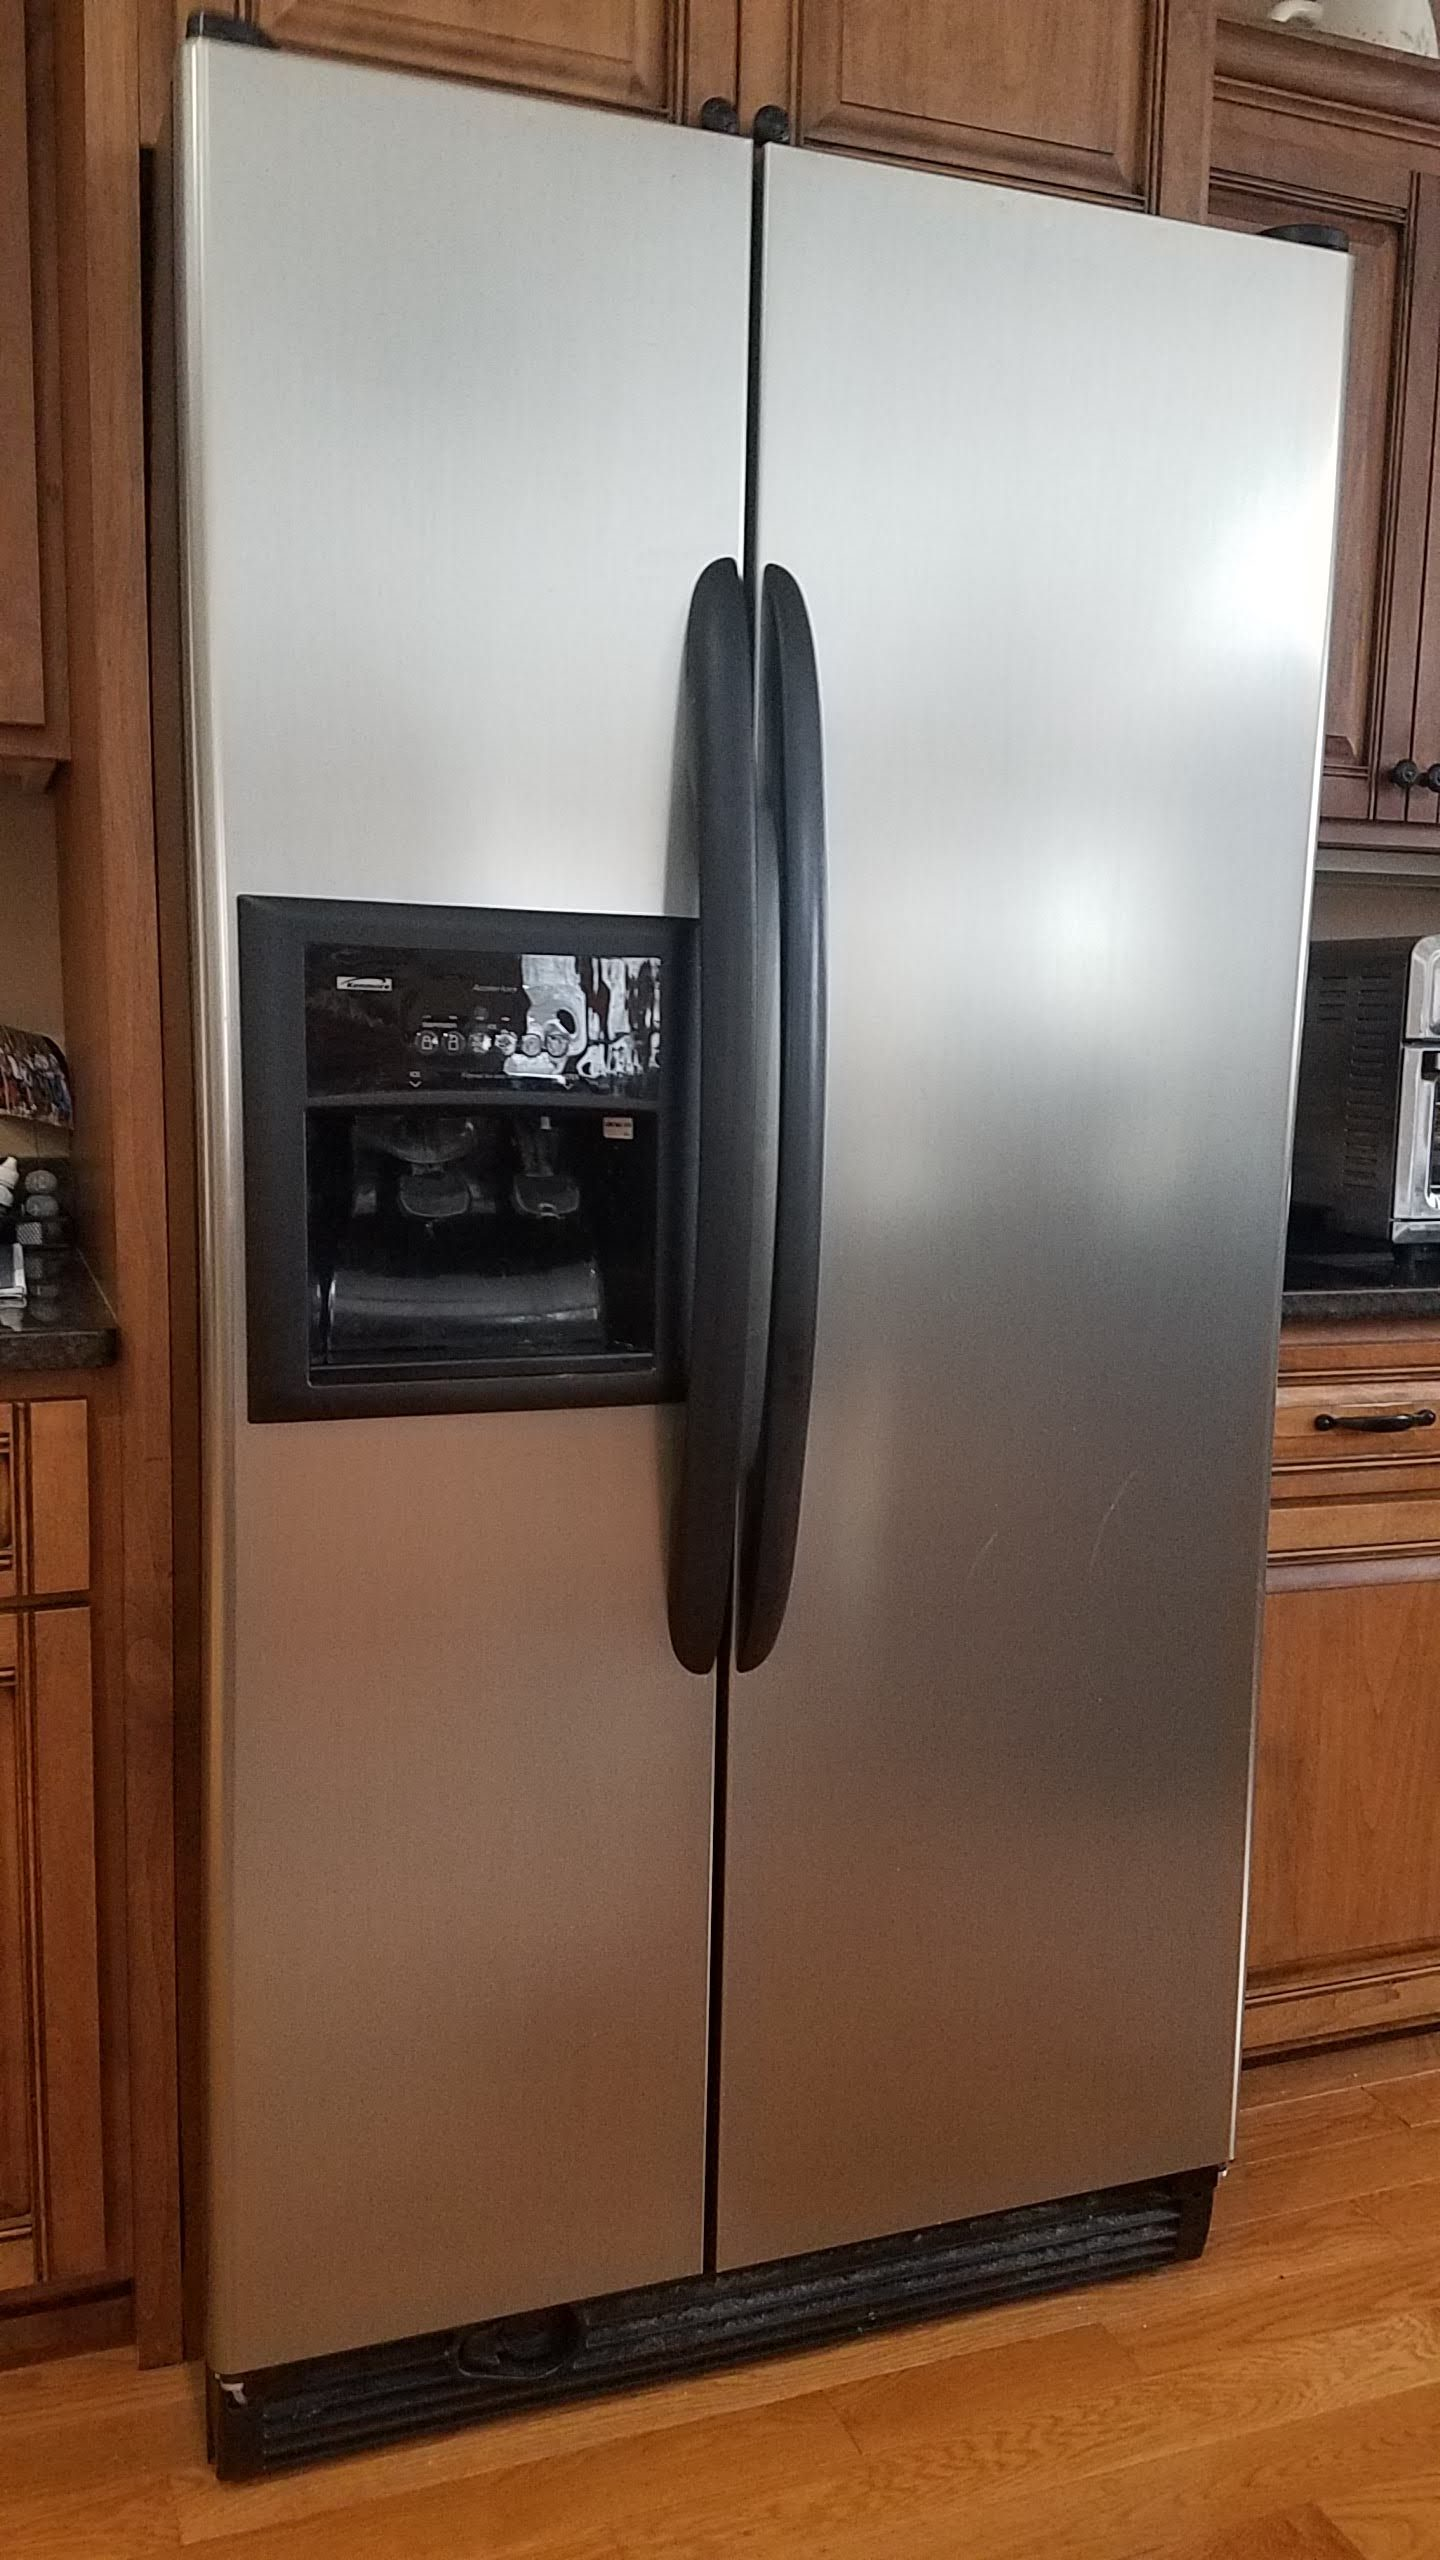 Is a 15 year old refrigerator worth repairing?